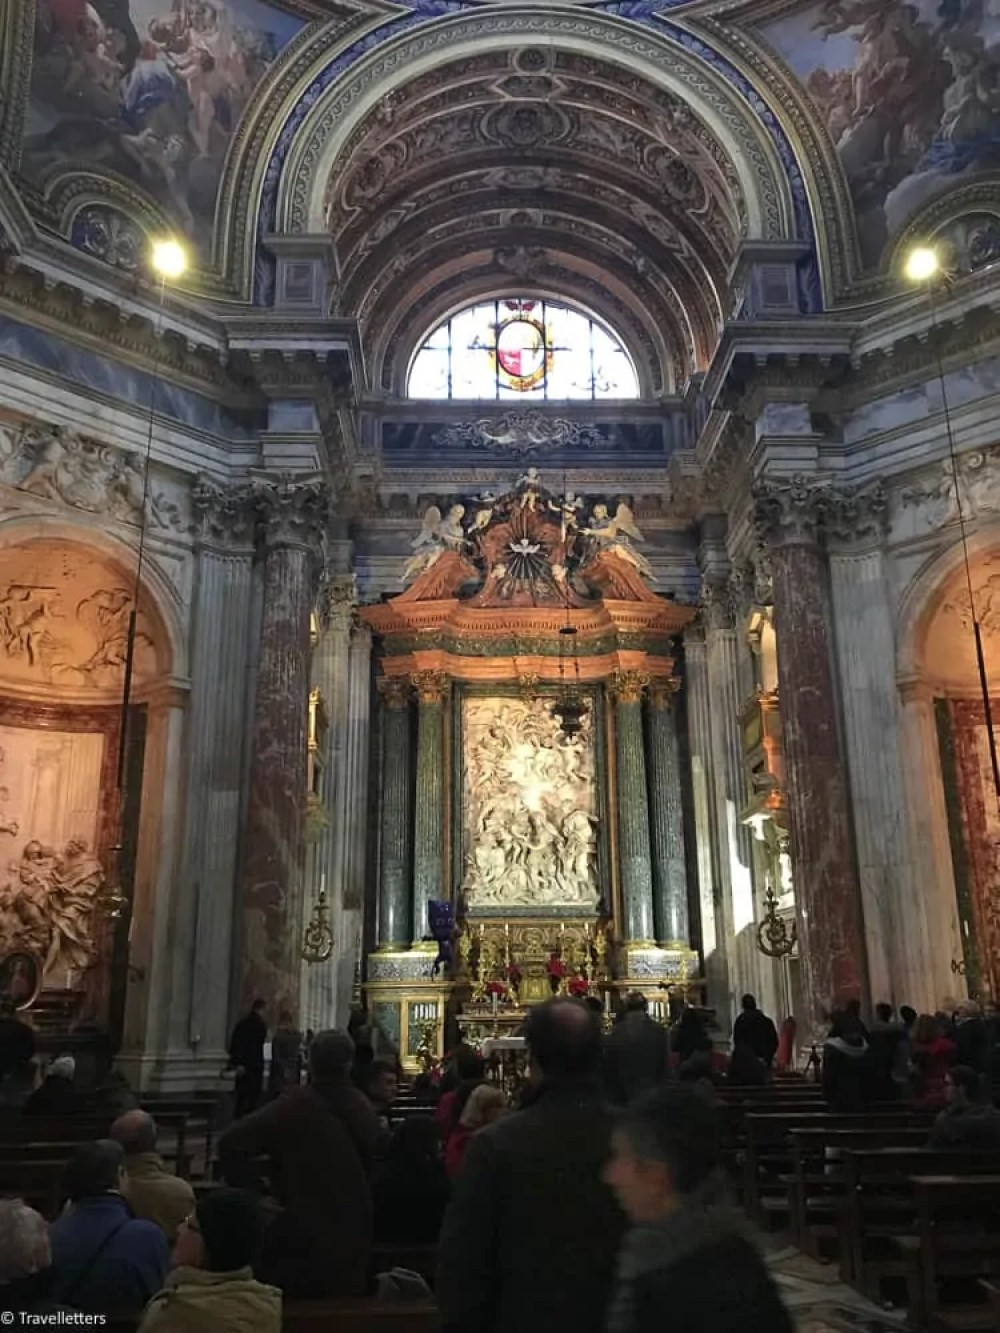 the church of Sant Agnese in Agone in Rome, vthings to do in Rome, St. Peter's Square, St. Peter's Dome in Rome, visit Rome in winter, Rome in winter, winter in Rome, Vatican city, 2-3 days Rome itinerary